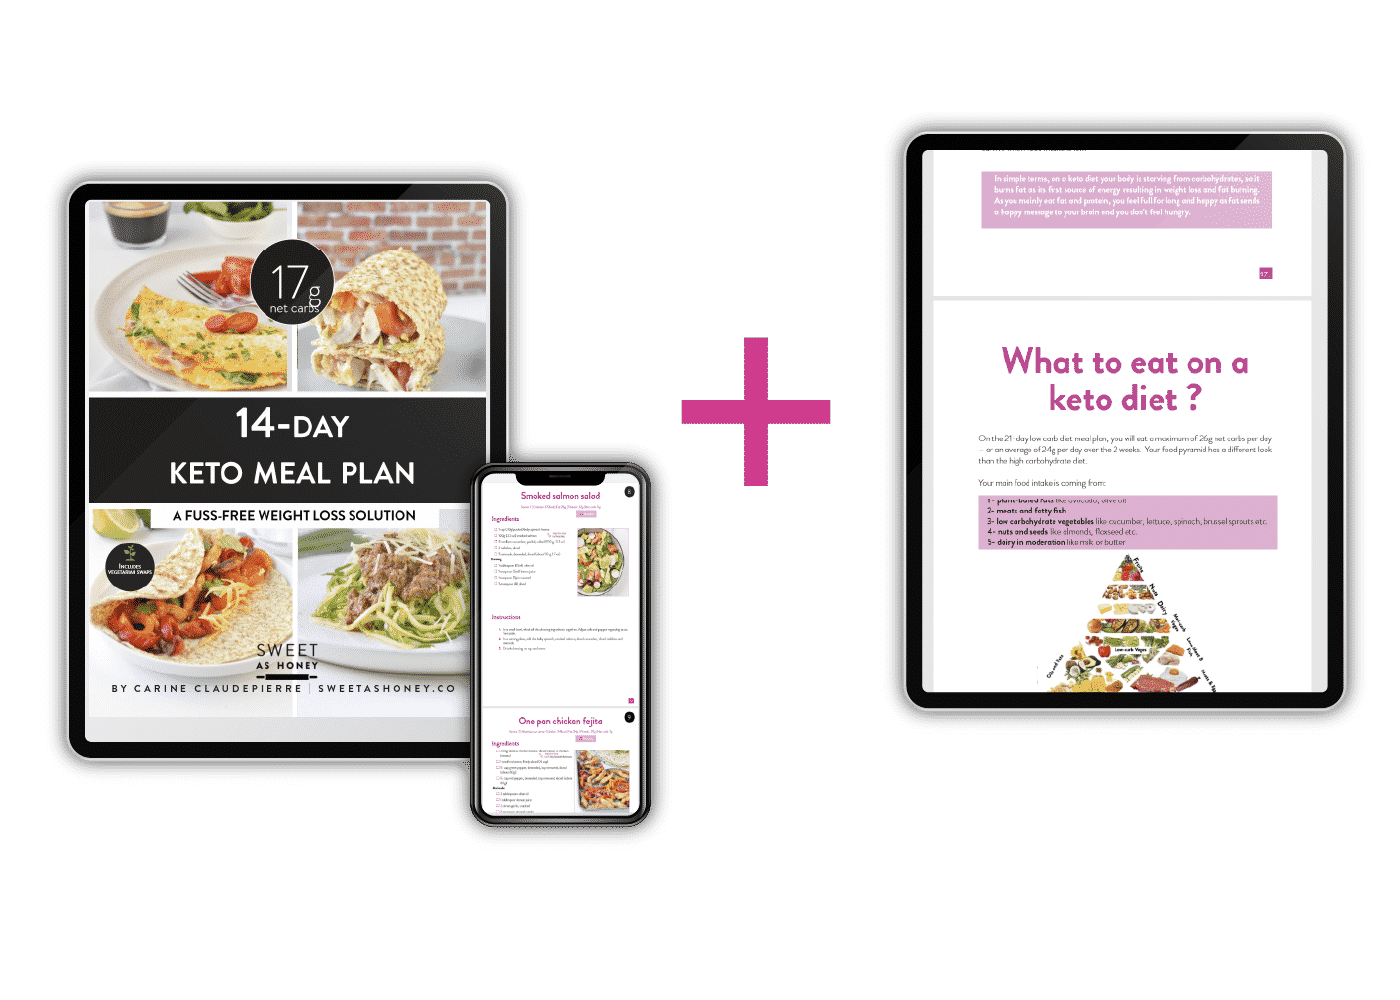 Tablet and Mobile views of the 14-day Keto Meal Plan Bundle